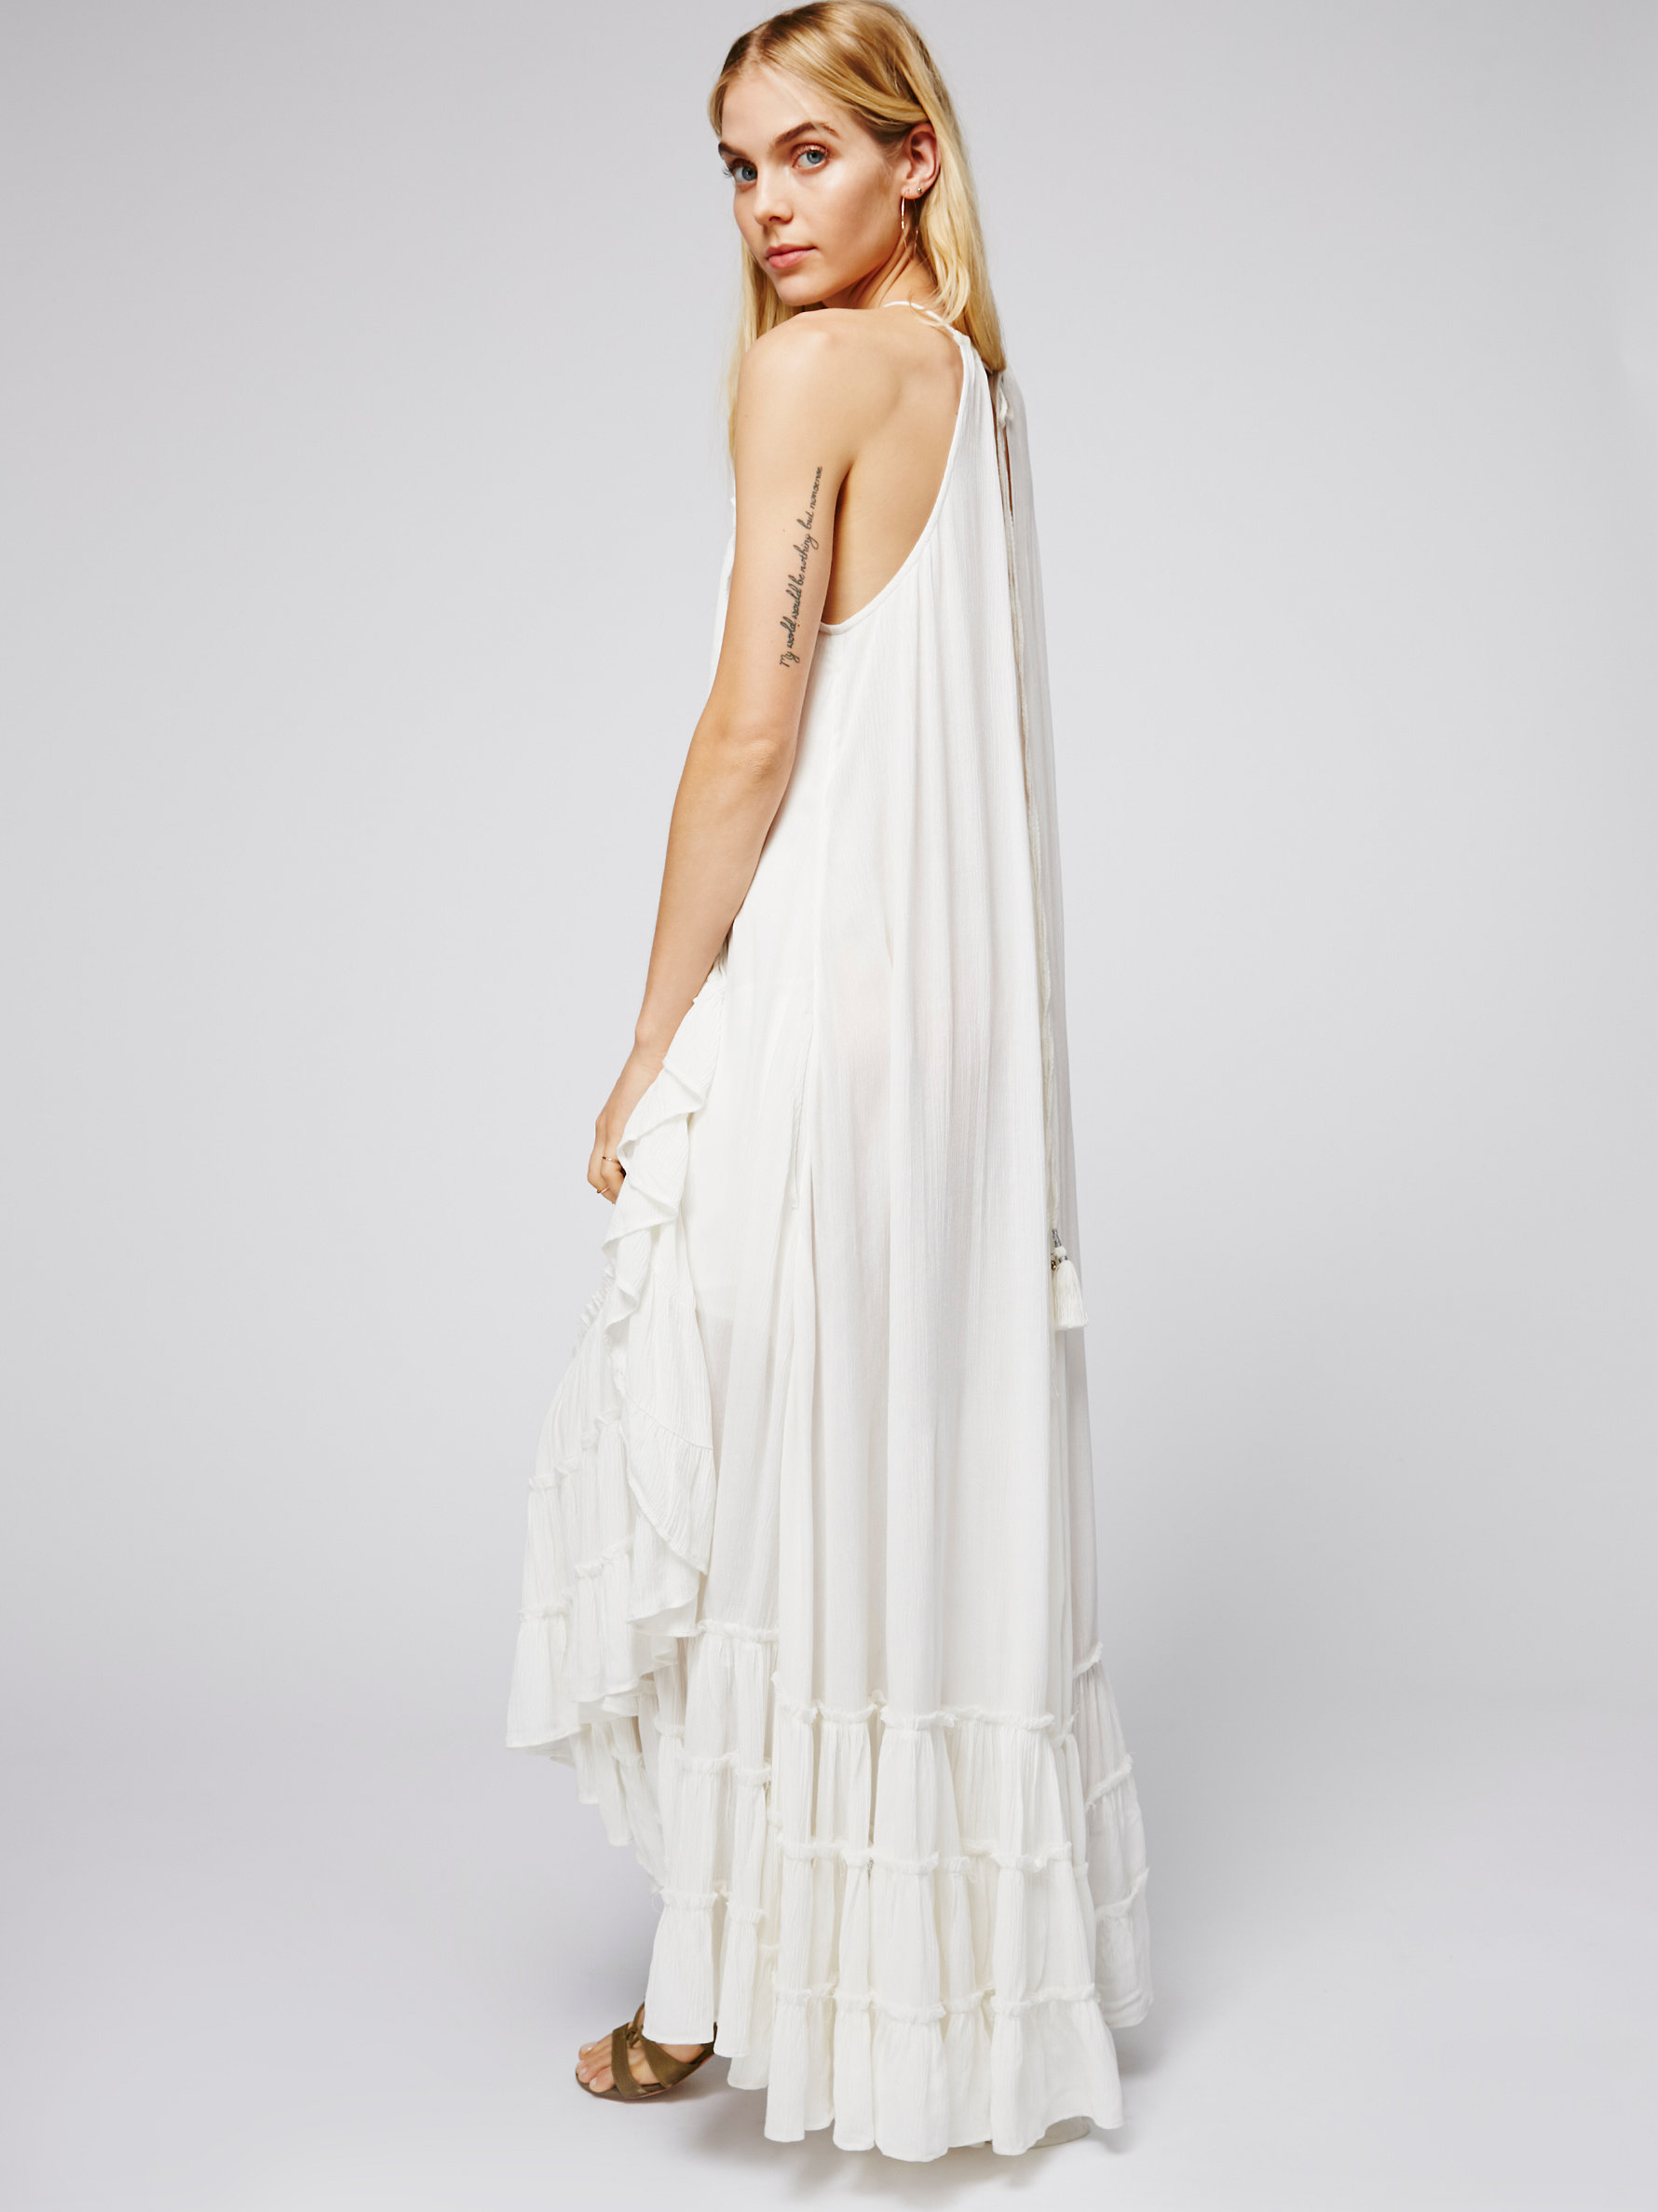 Free People Wrap Around Maxi Dress In Ivory White Lyst